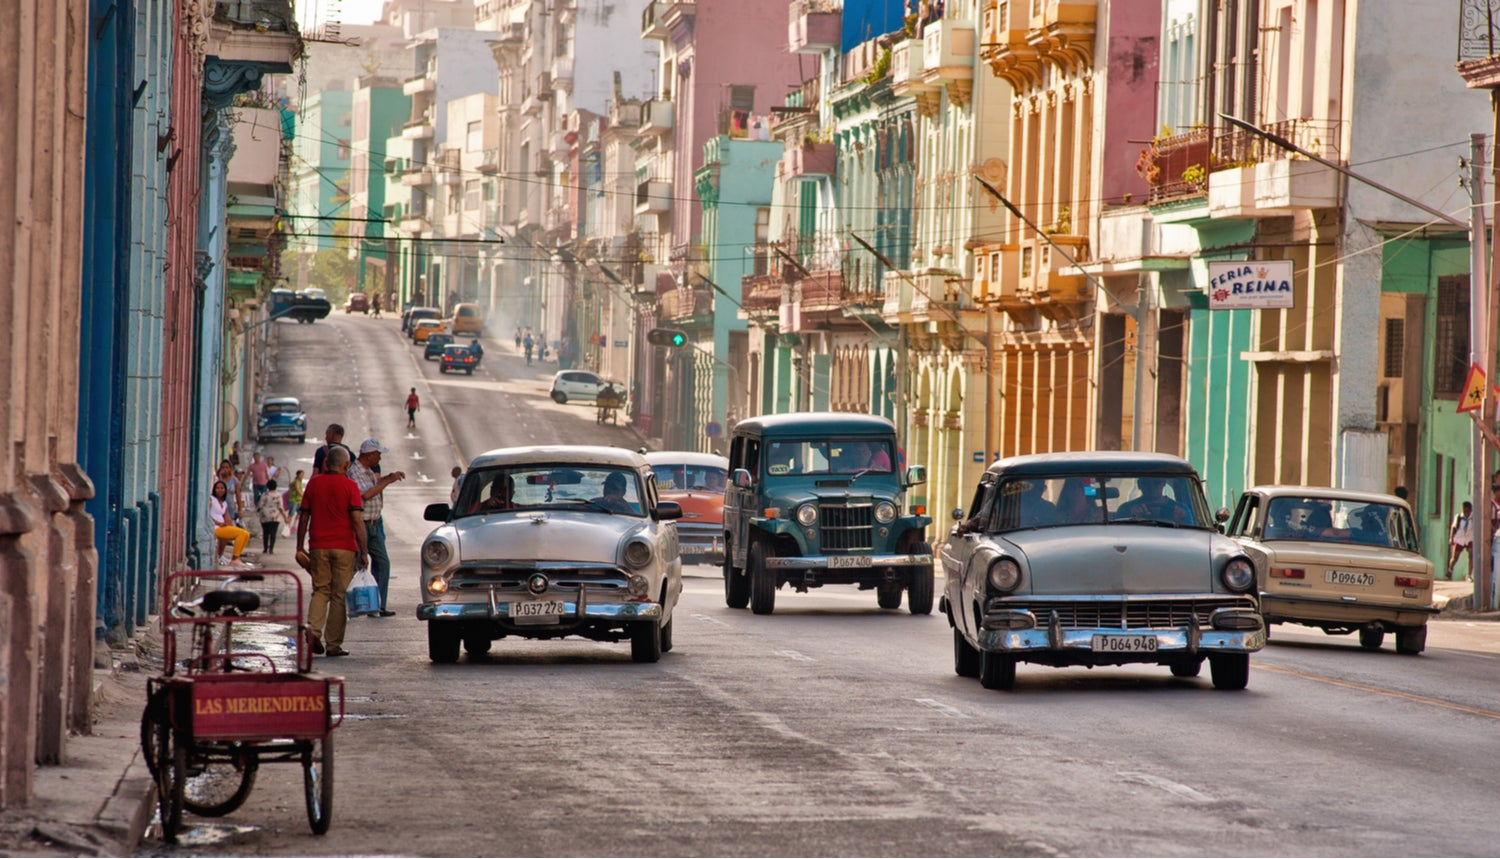 The U.S. just made it even harder to travel to Cuba